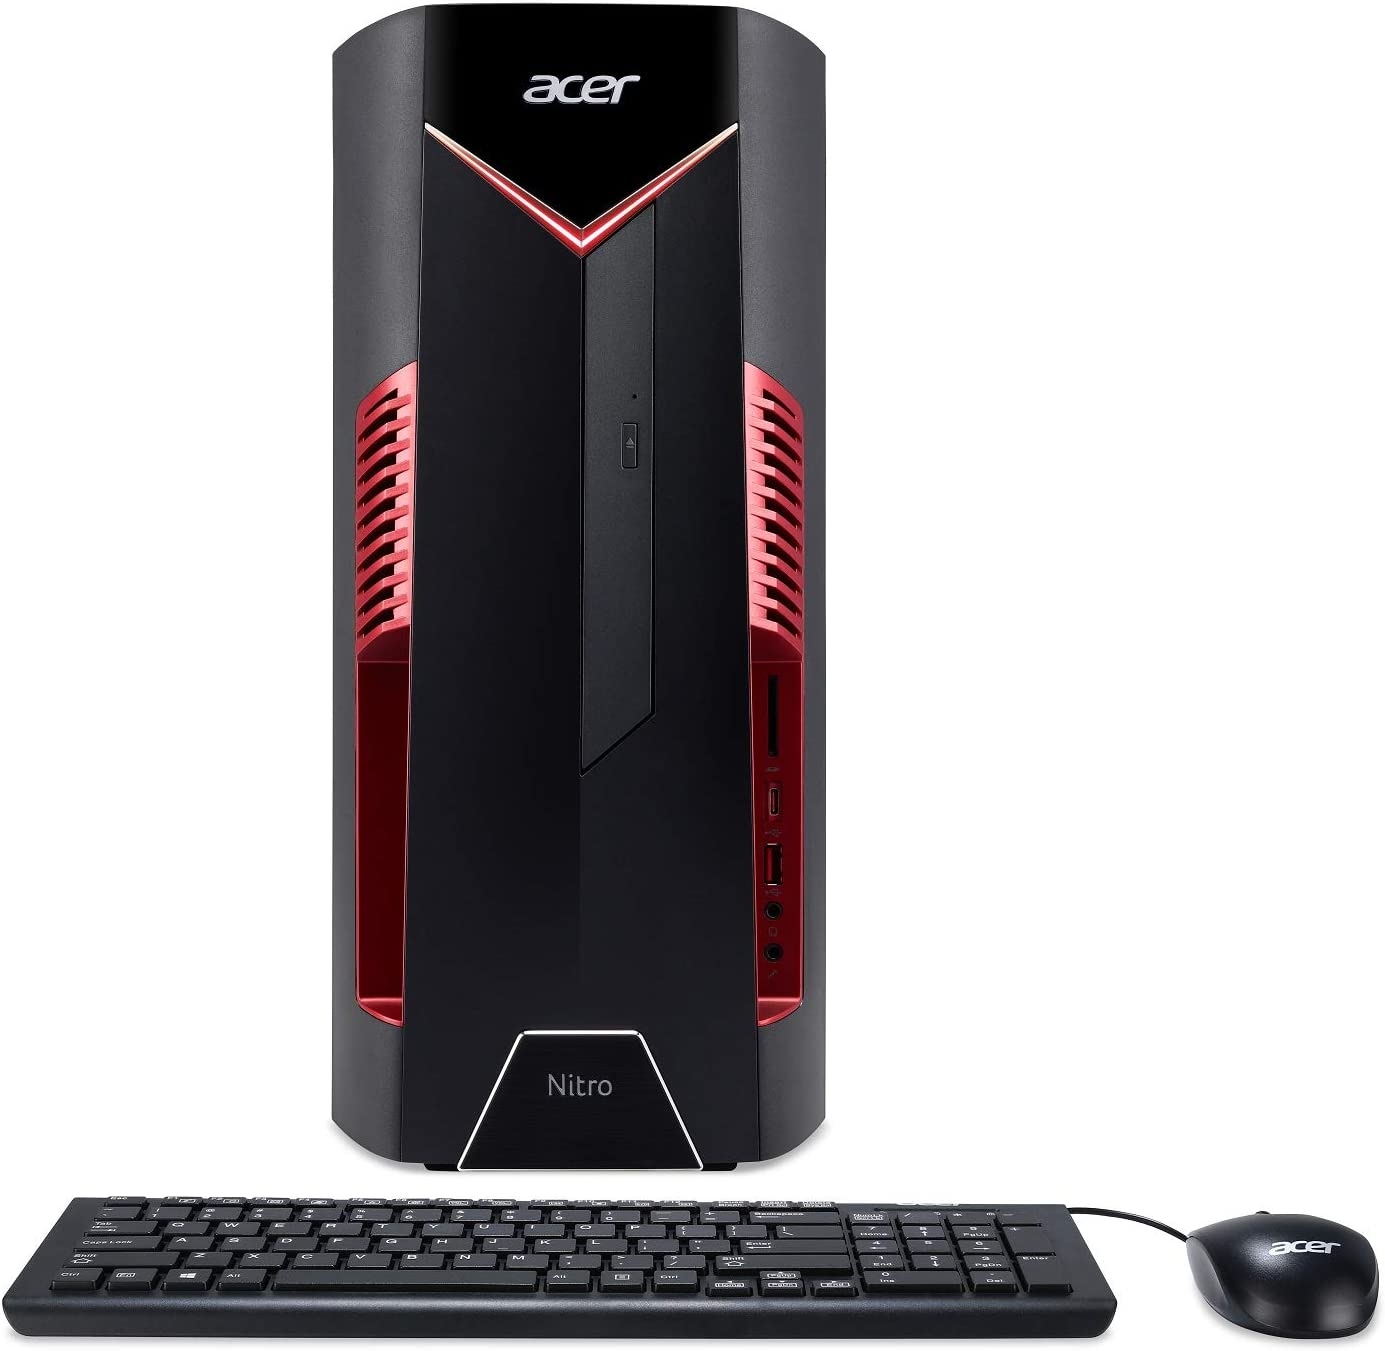 Acer Nitro 50 N50-600-UR11 Desktop, 8th Gen Intel Core i5-8400, GeForce GTX 1050 Ti Graphics, 8GB DDR4, 1TB HDD, Windows 10 Home